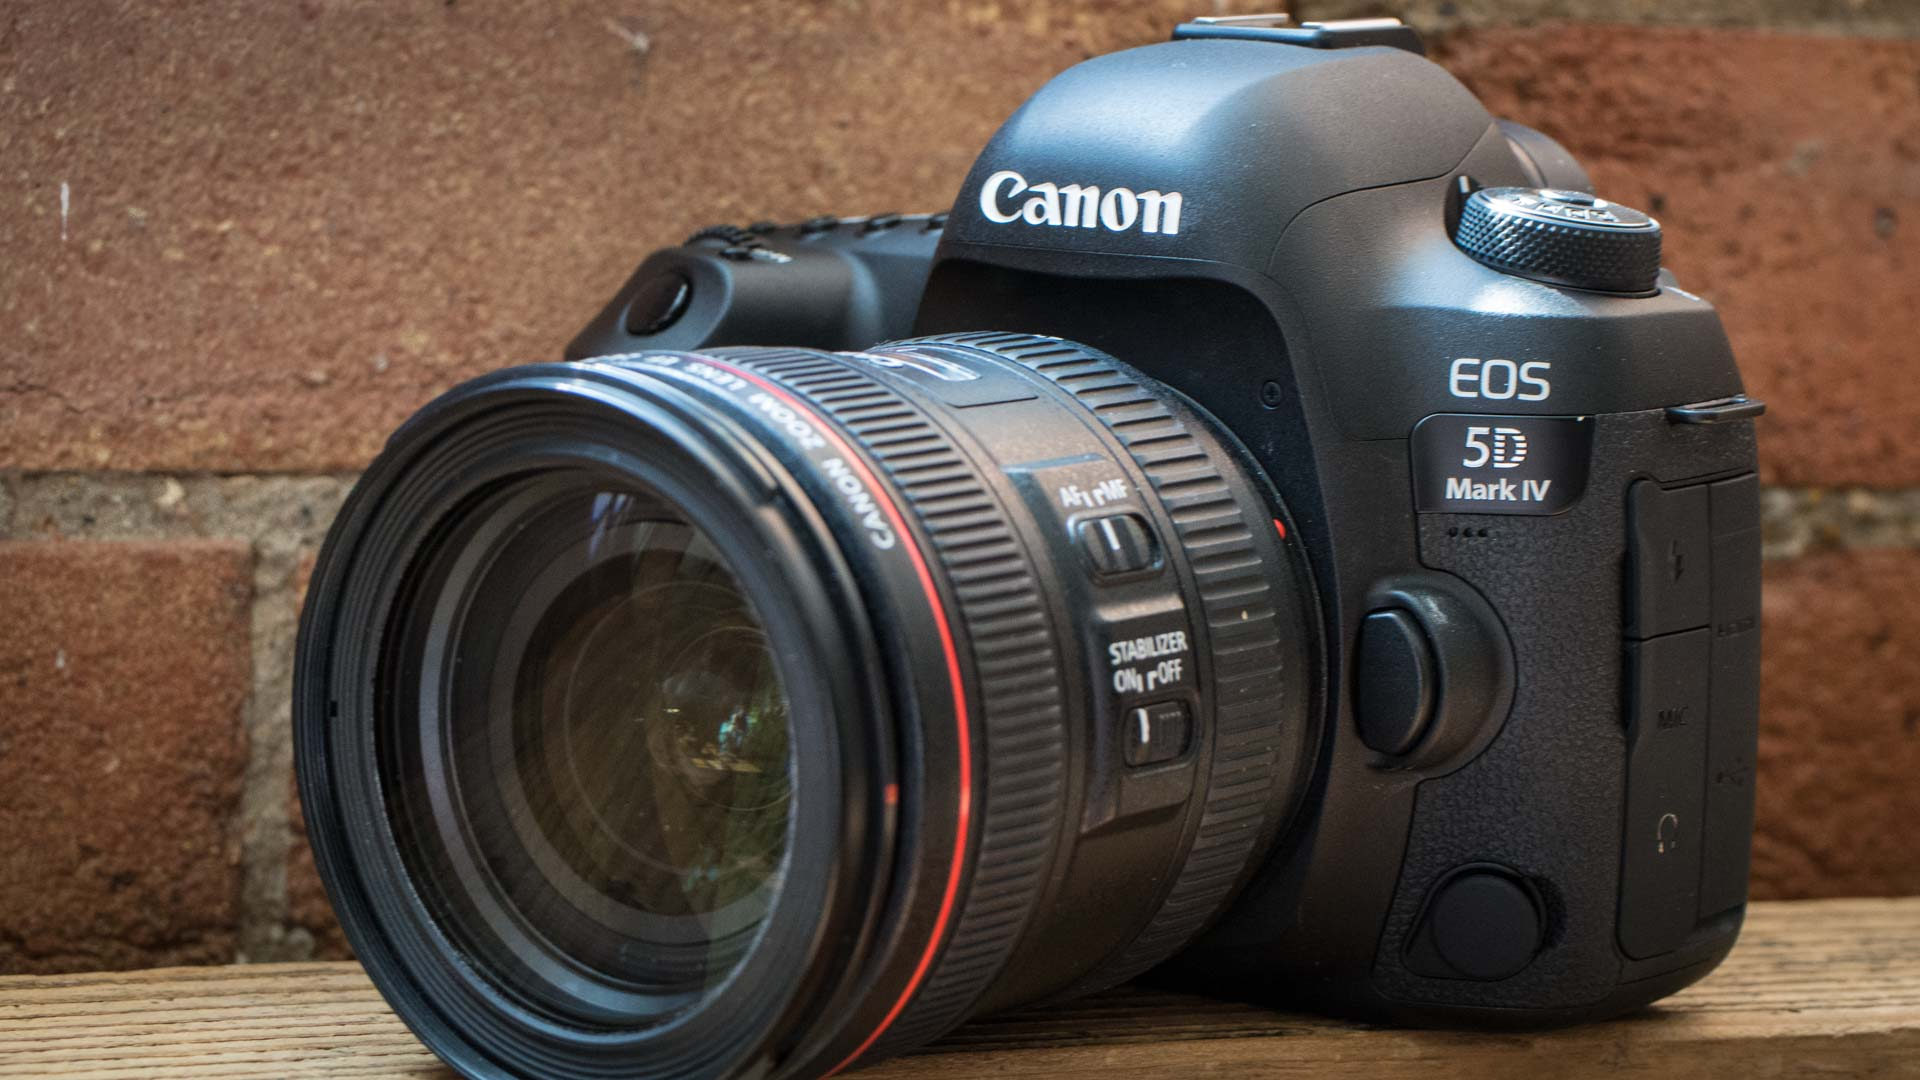 Hands-on with the Canon EOS 5D Mark IV